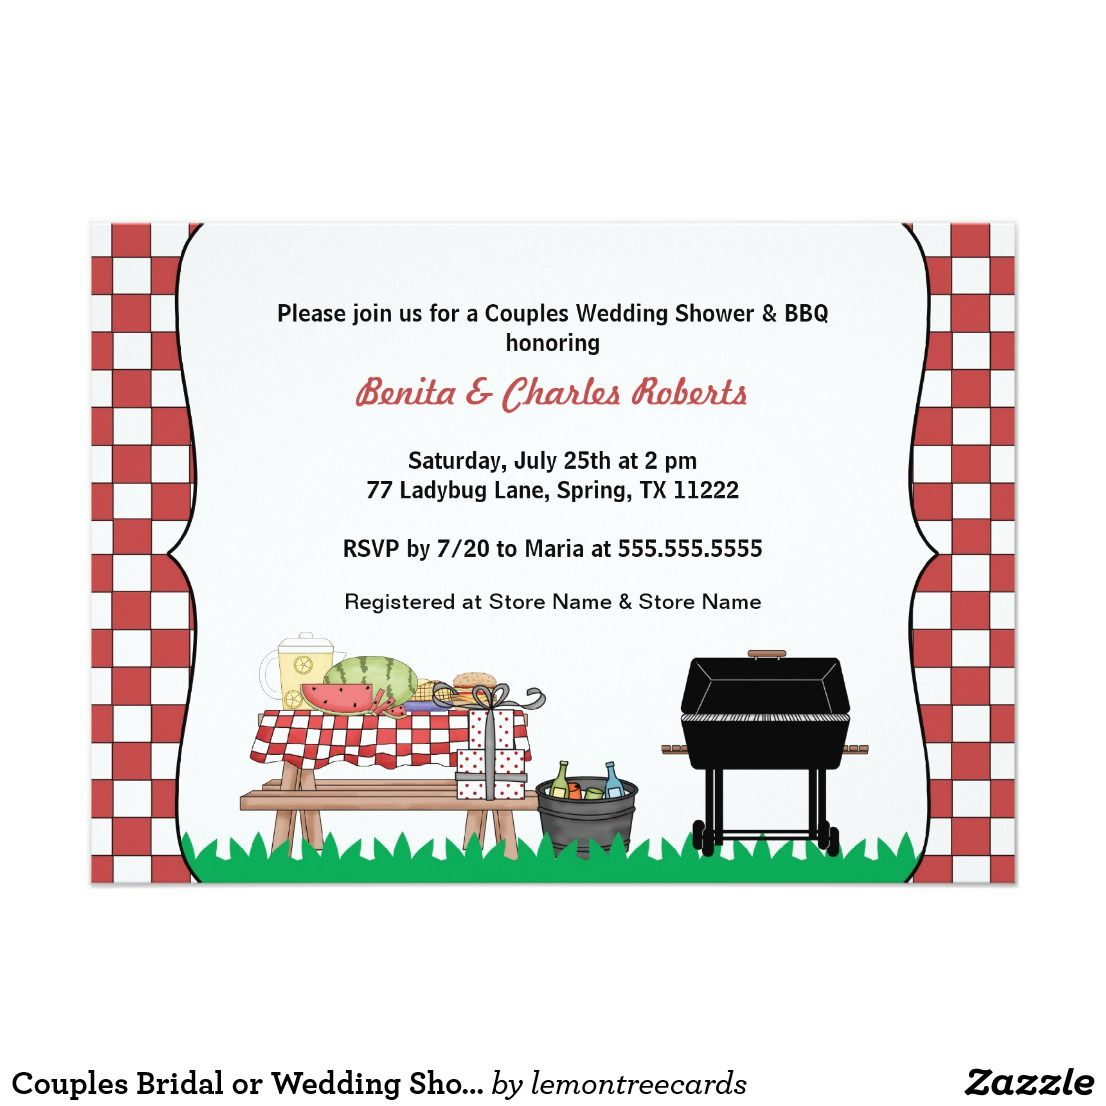 Couples Bridal or Wedding Shower & BBQ invite | Bridal showers ...